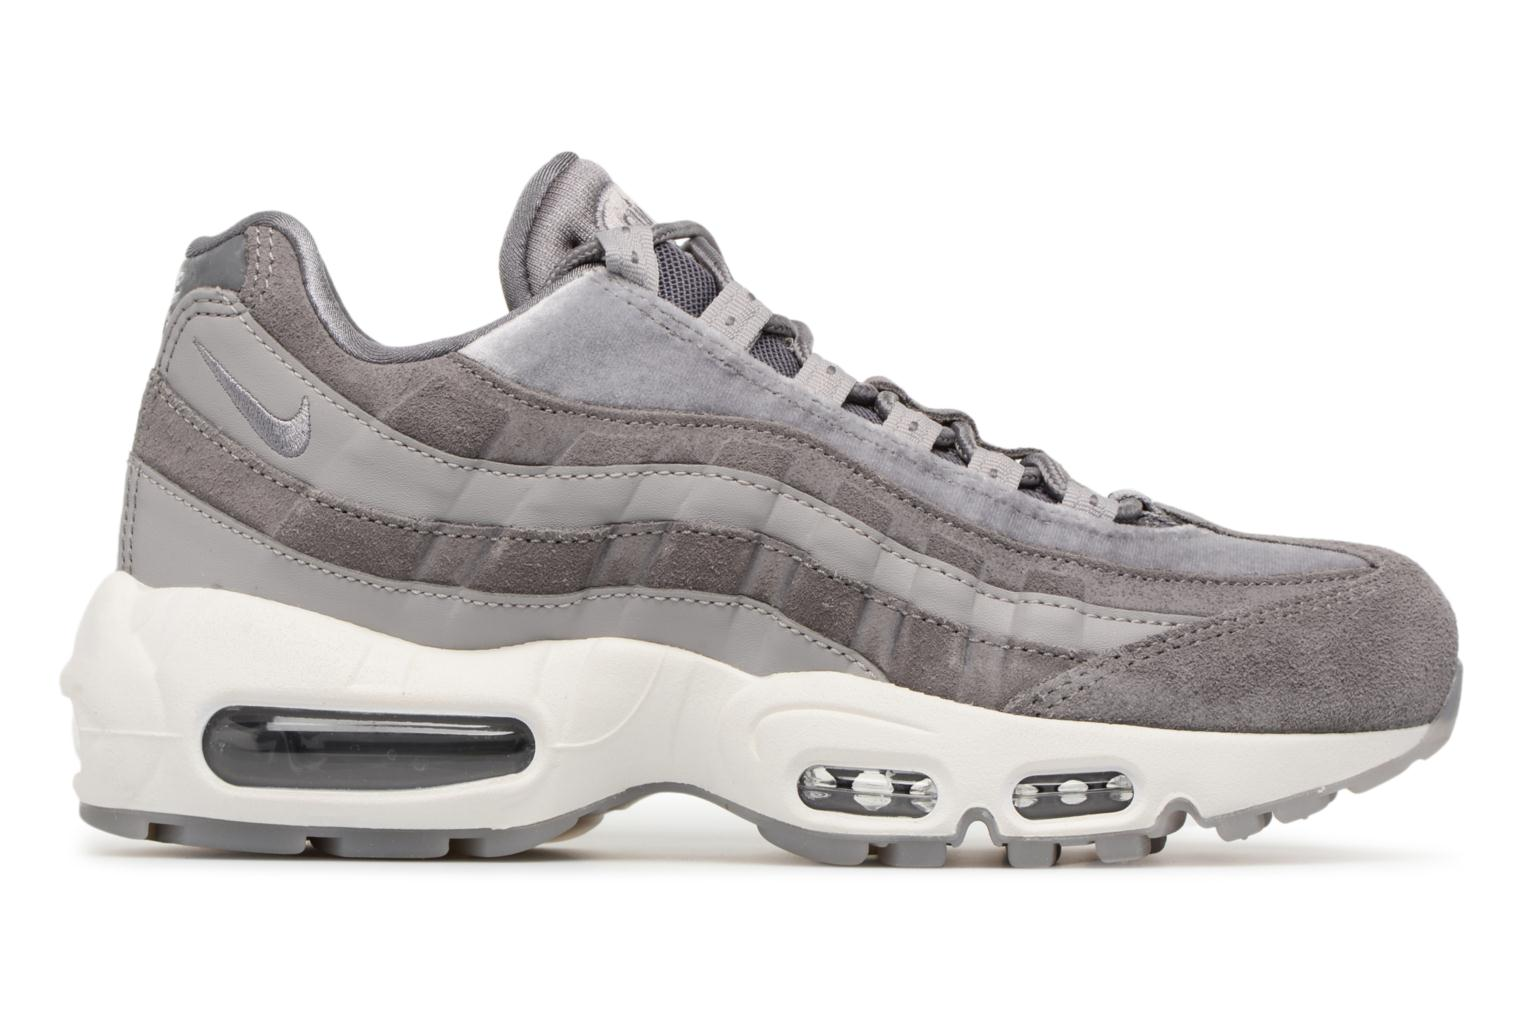 Gunsmoke/Gunsmoke-Atmosphere Grey Nike Wmns Air Max 95 Lx (Gris)